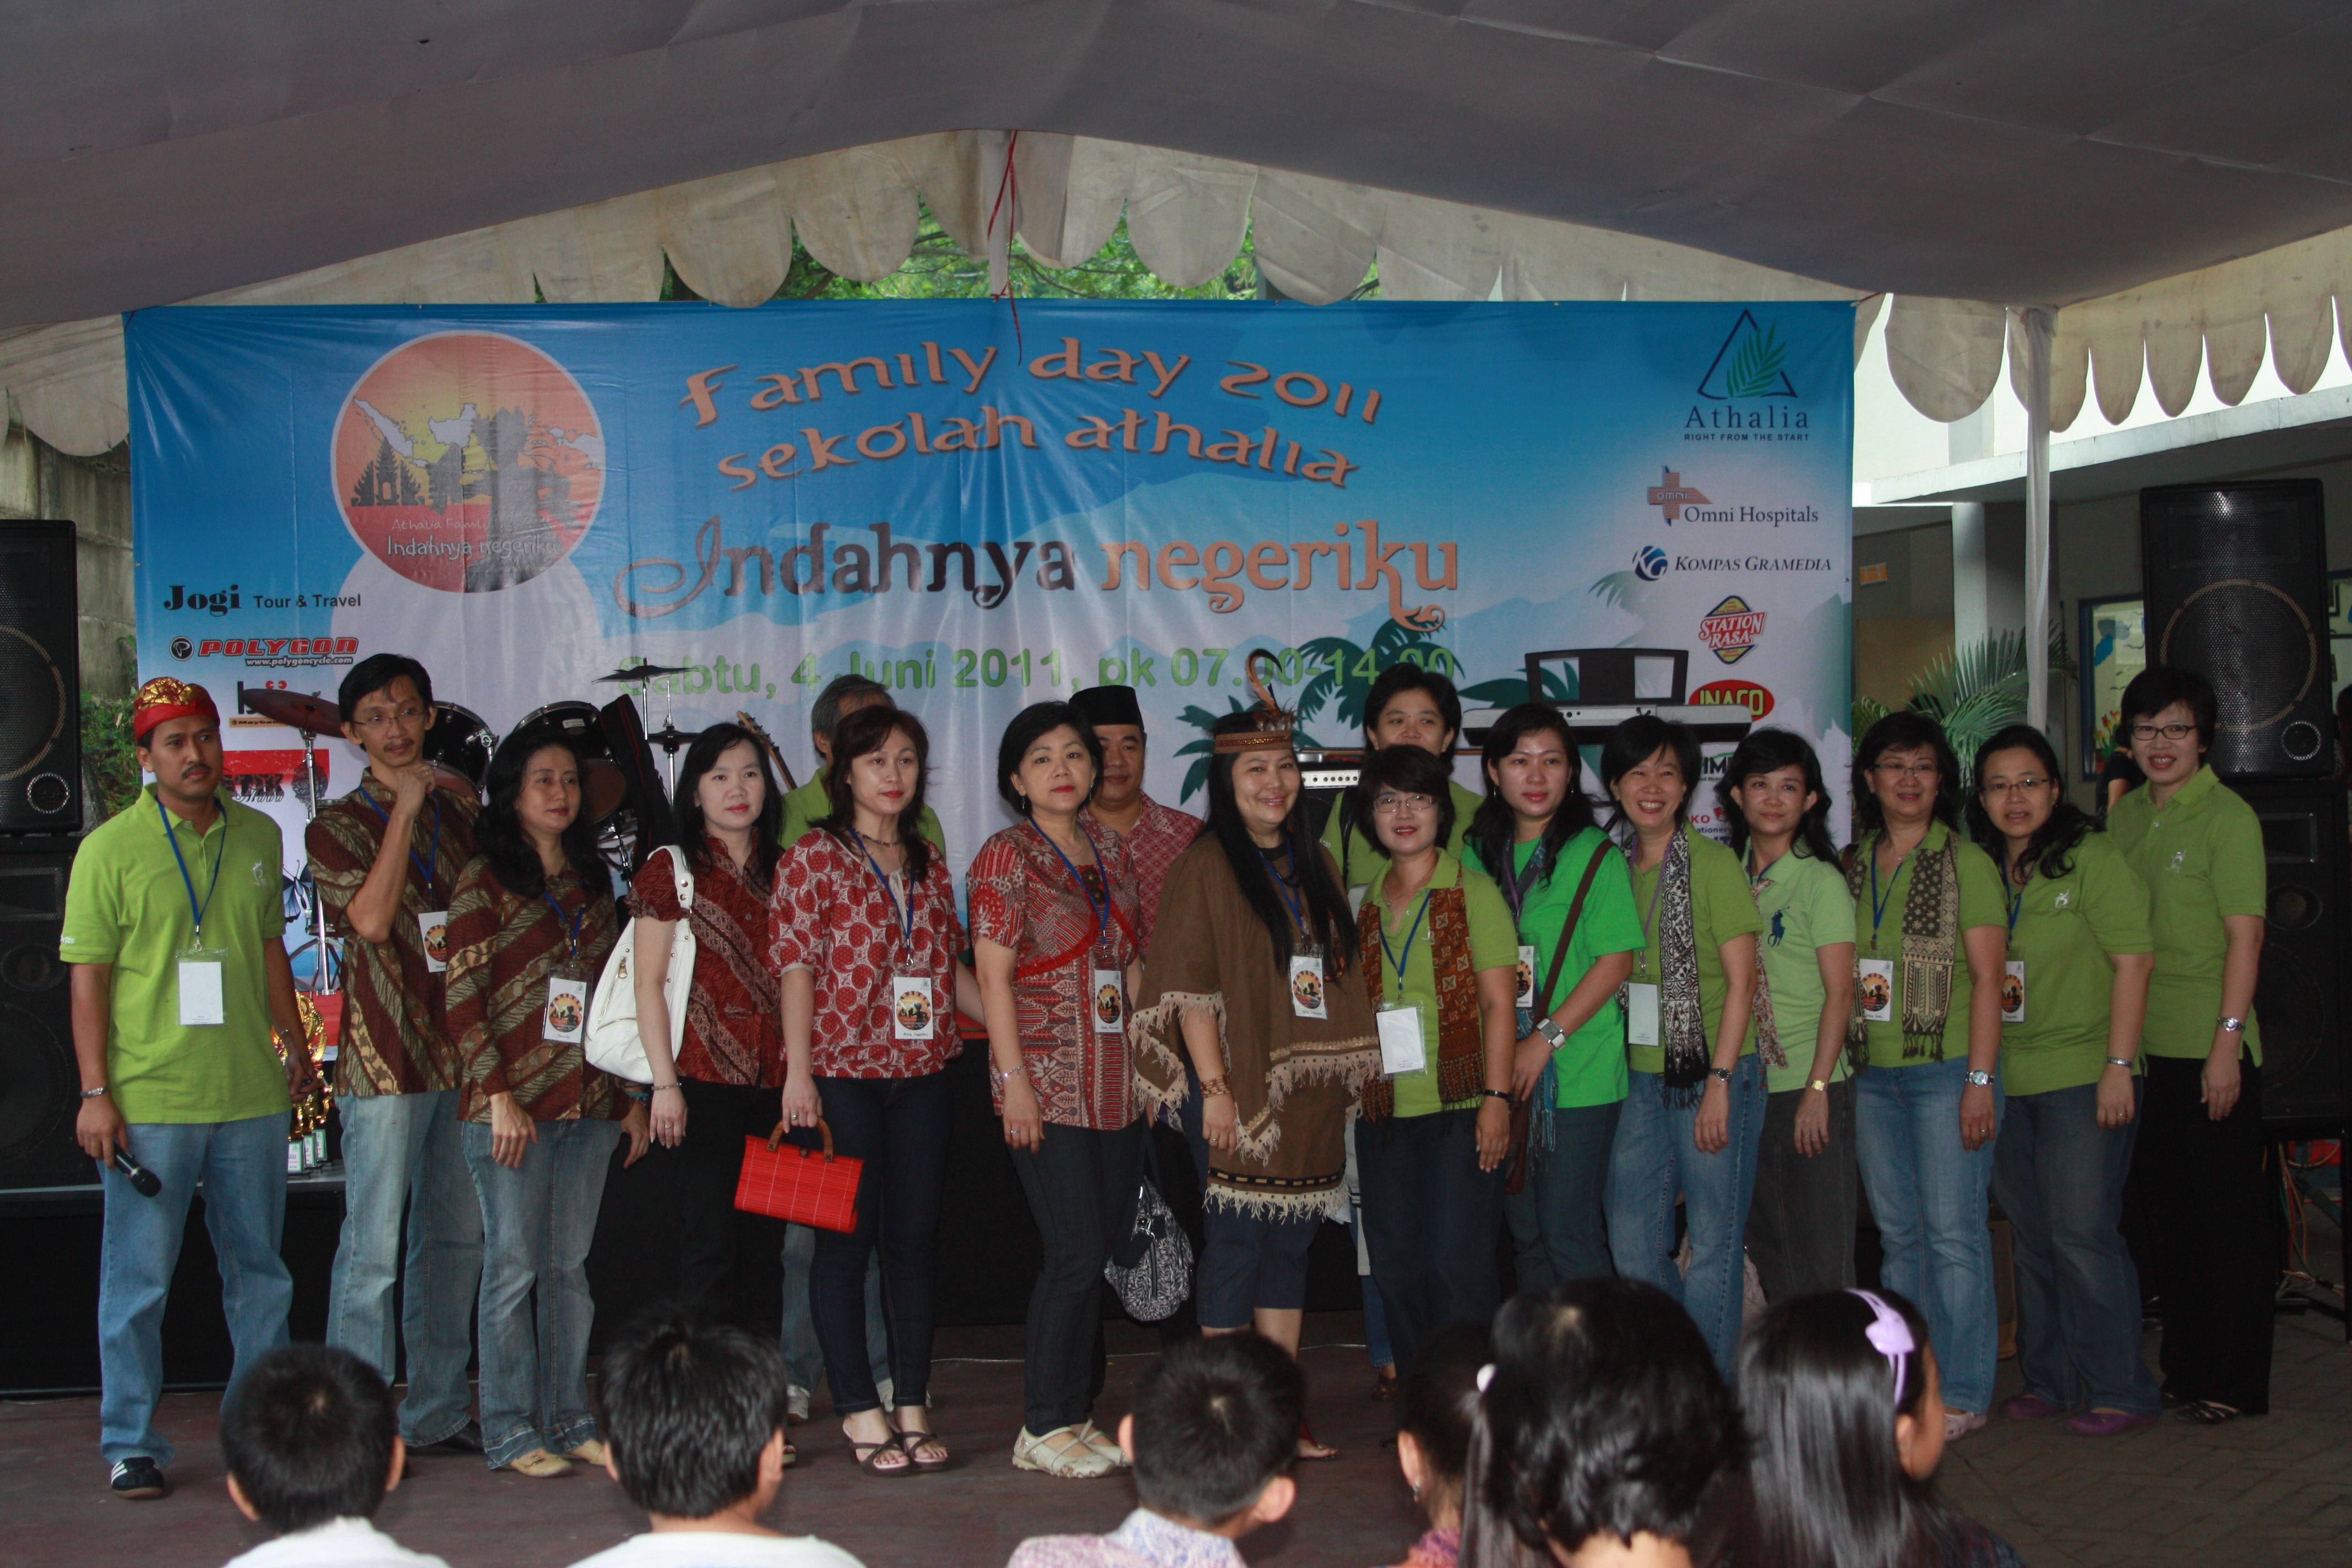 Family Day 2011